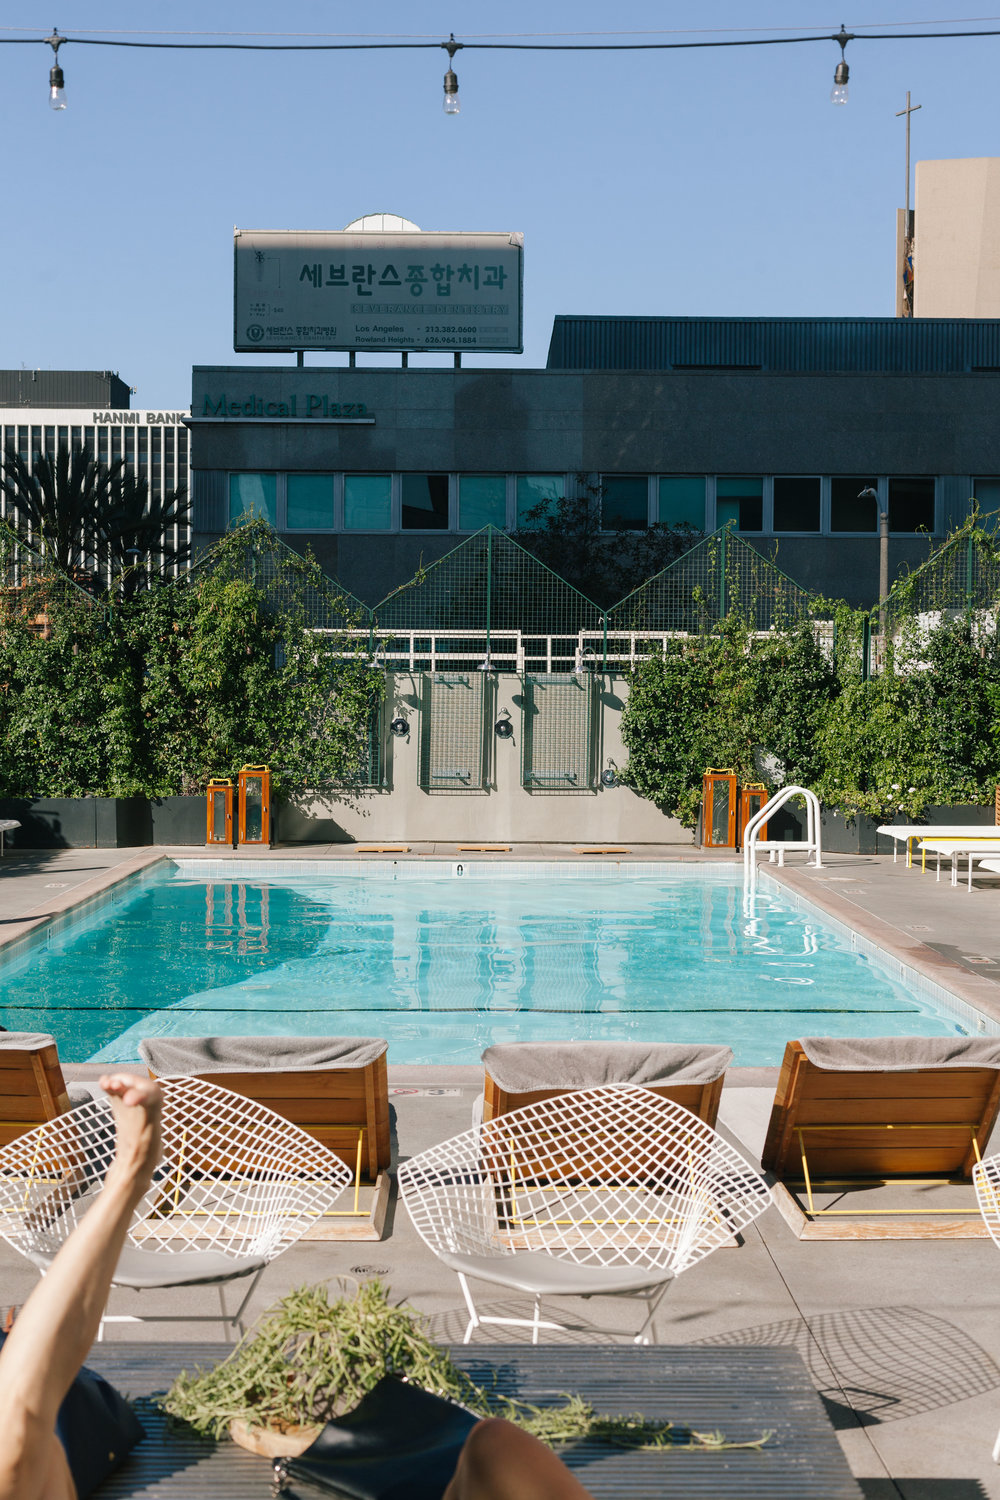 Poolside at the LINE hotel in Los Angeles